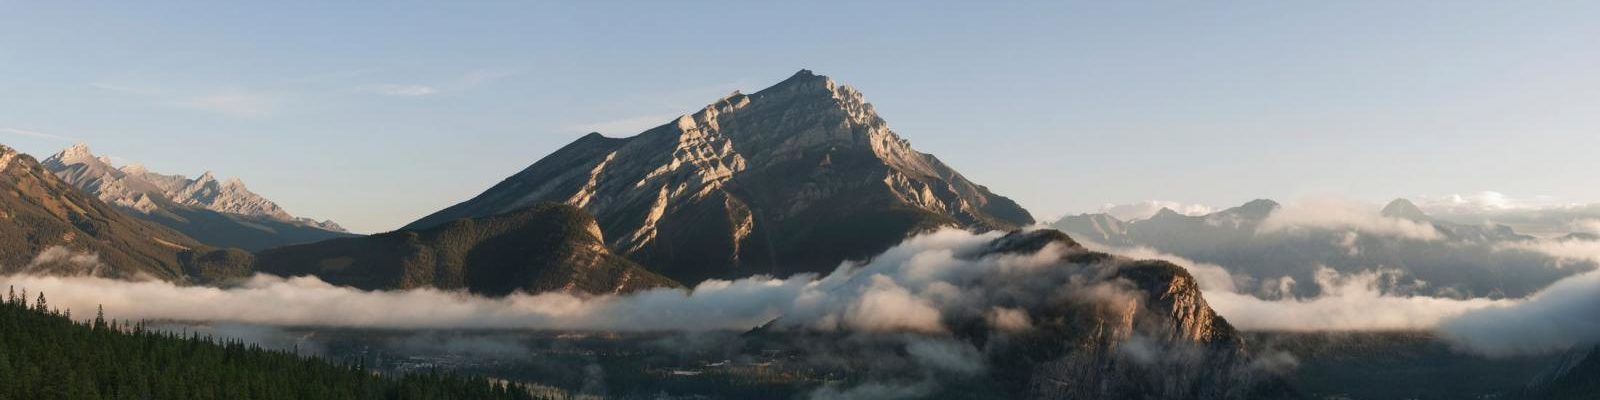 001911_View from Rimrock Resort_Banff National Park_Alberta - Photo Credit Copithorne and Blakely_Travel Alberta_001